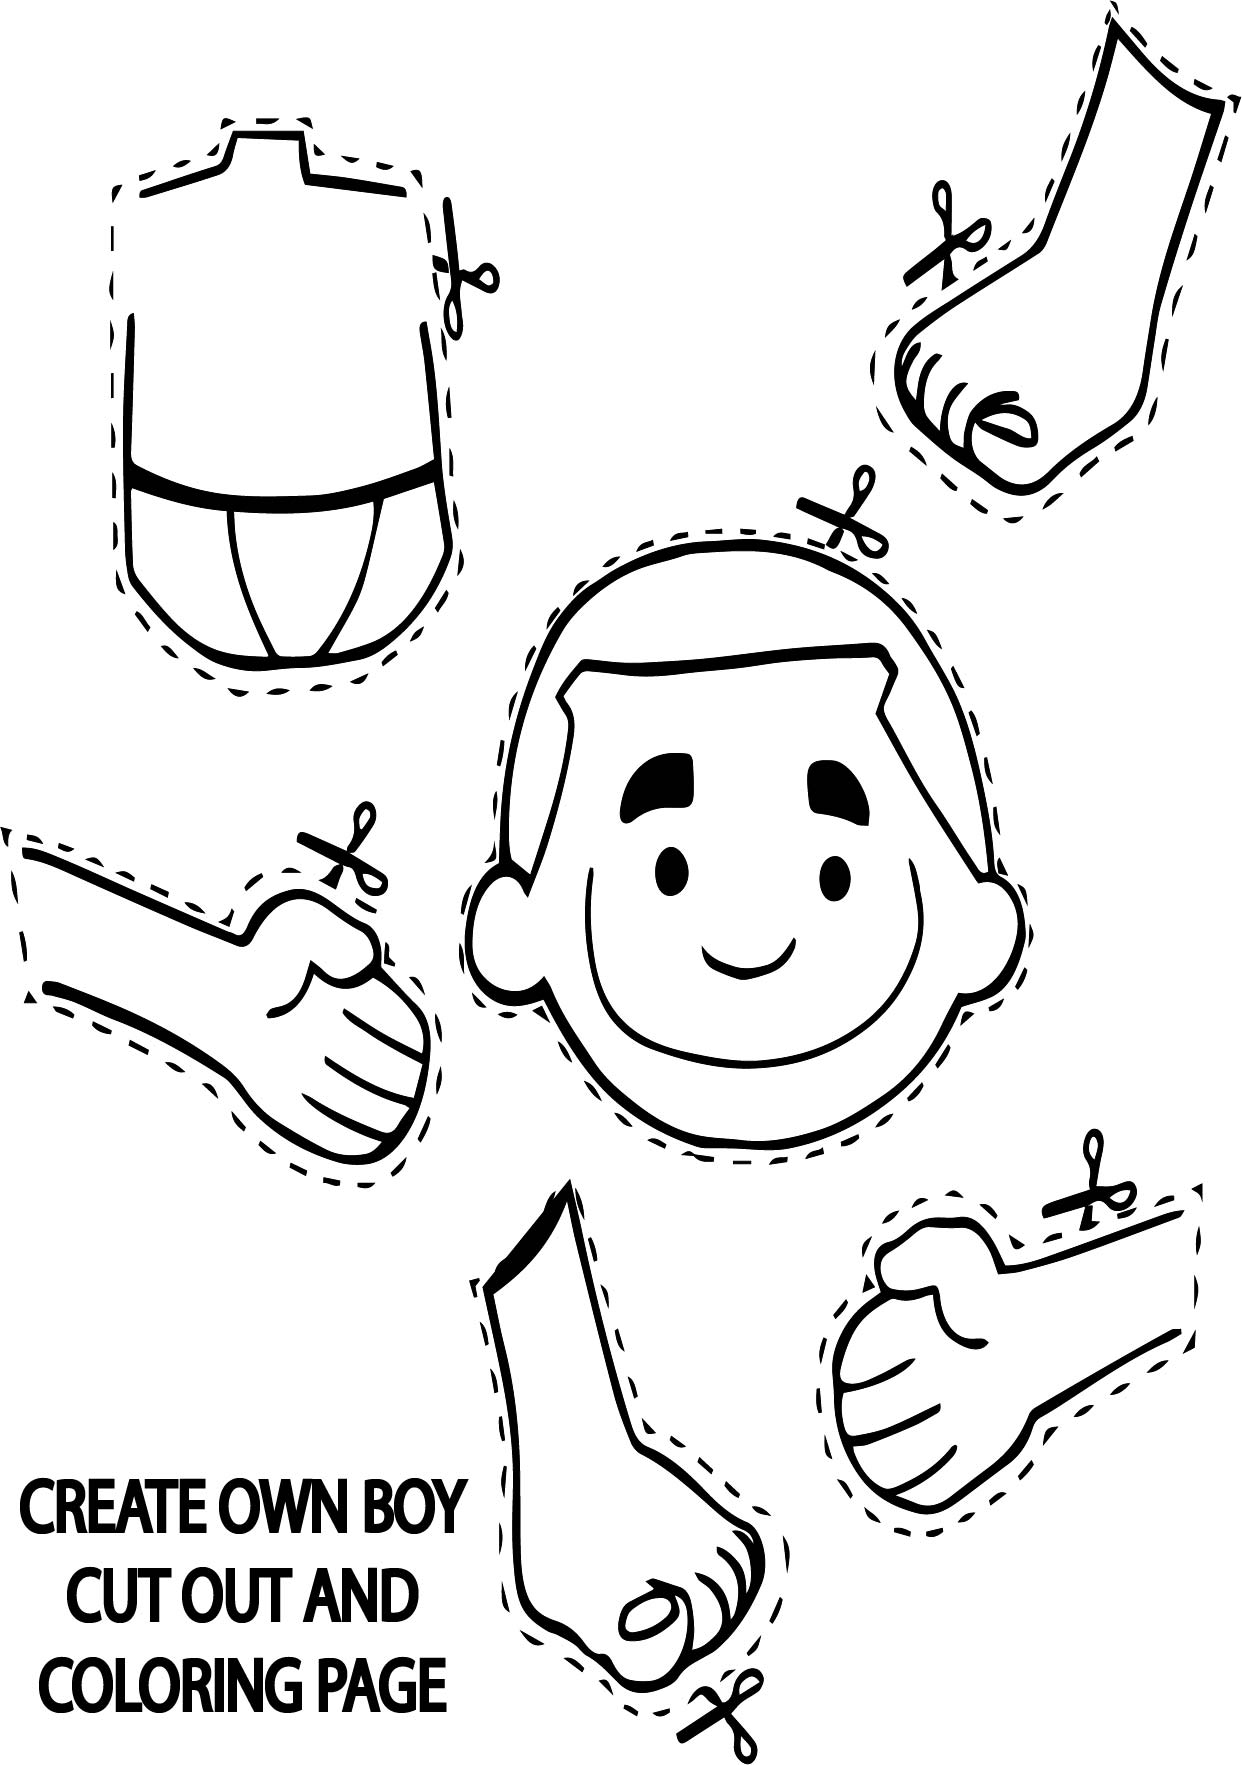 Create Own Boy Cut Out Coloring Page